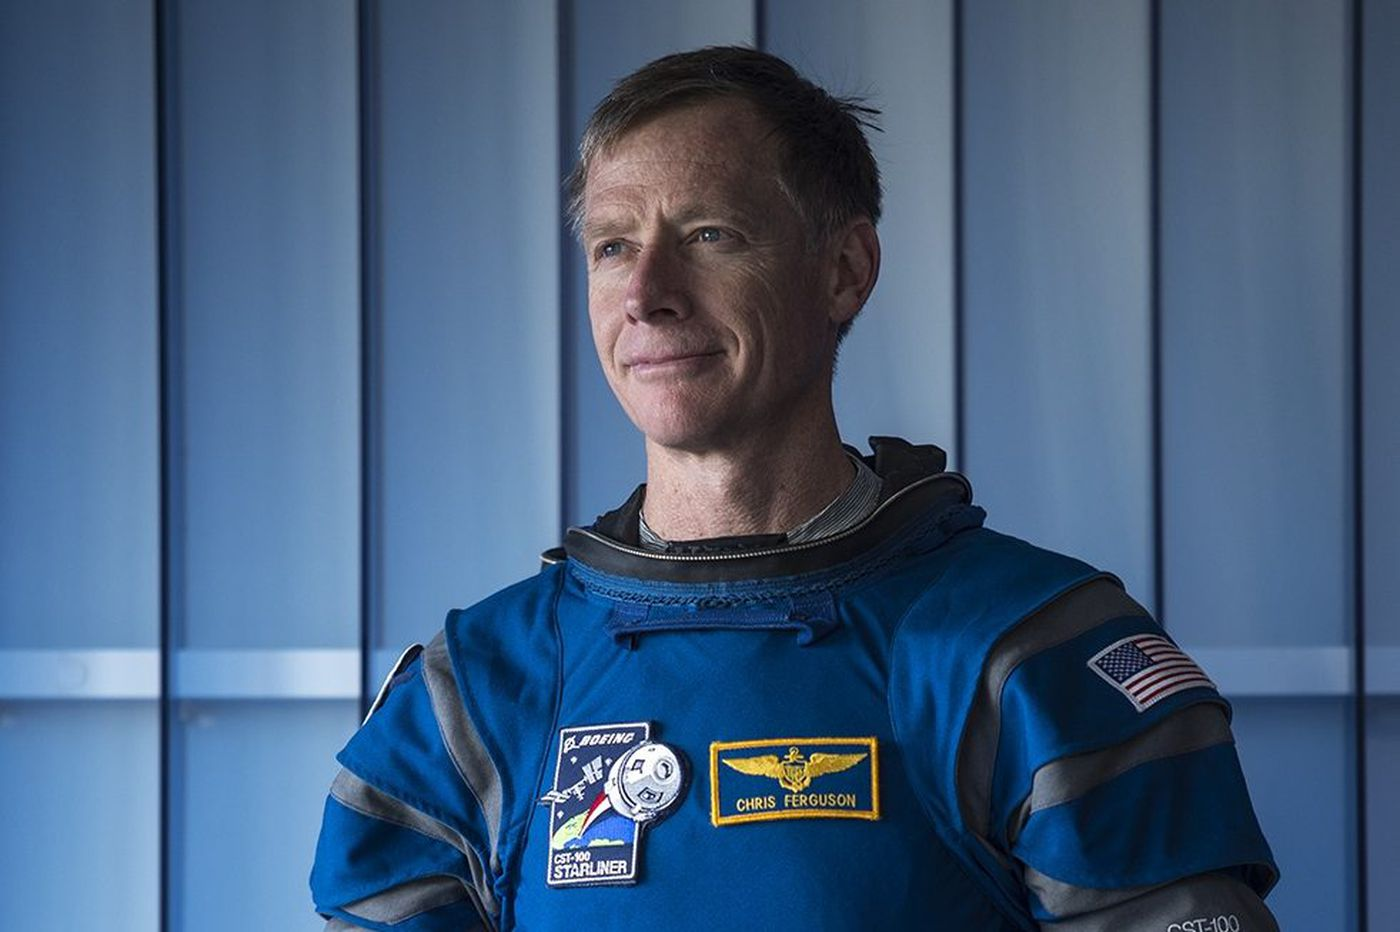 Philly astronaut to command test capsule in 2019 launch